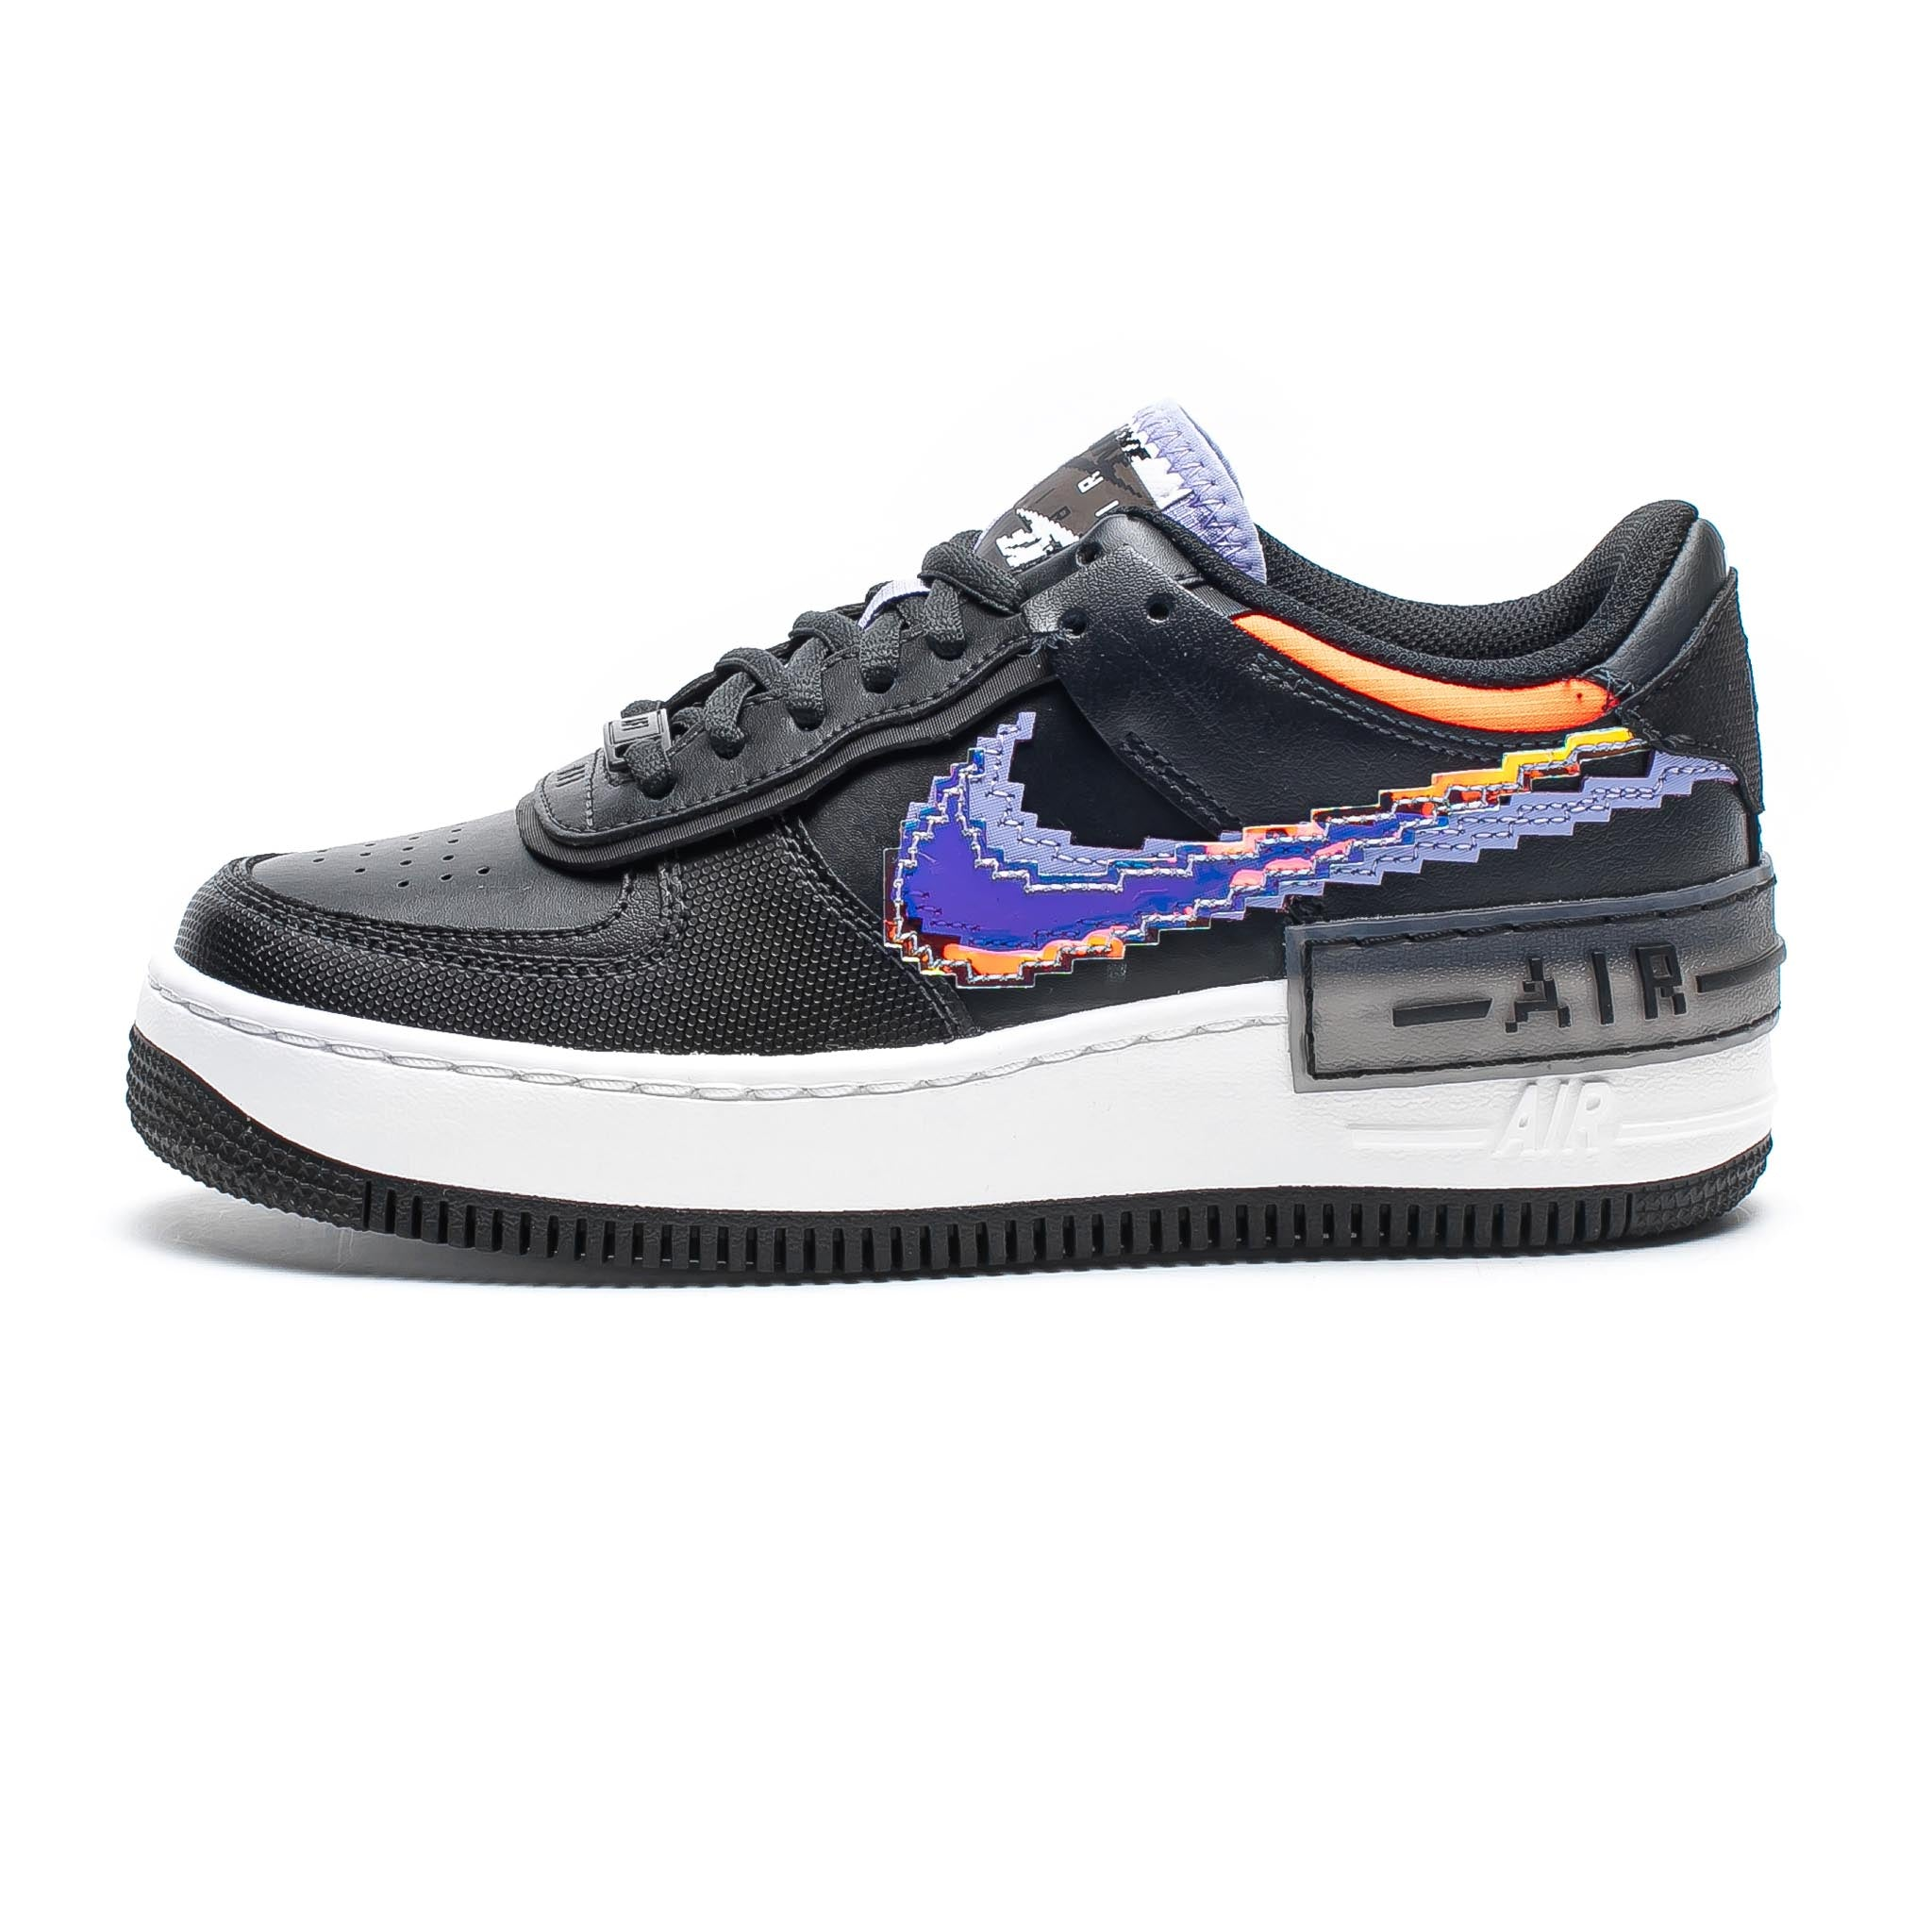 Nike Air Force 1 Shadow SE 'Pixel Swoosh' Black